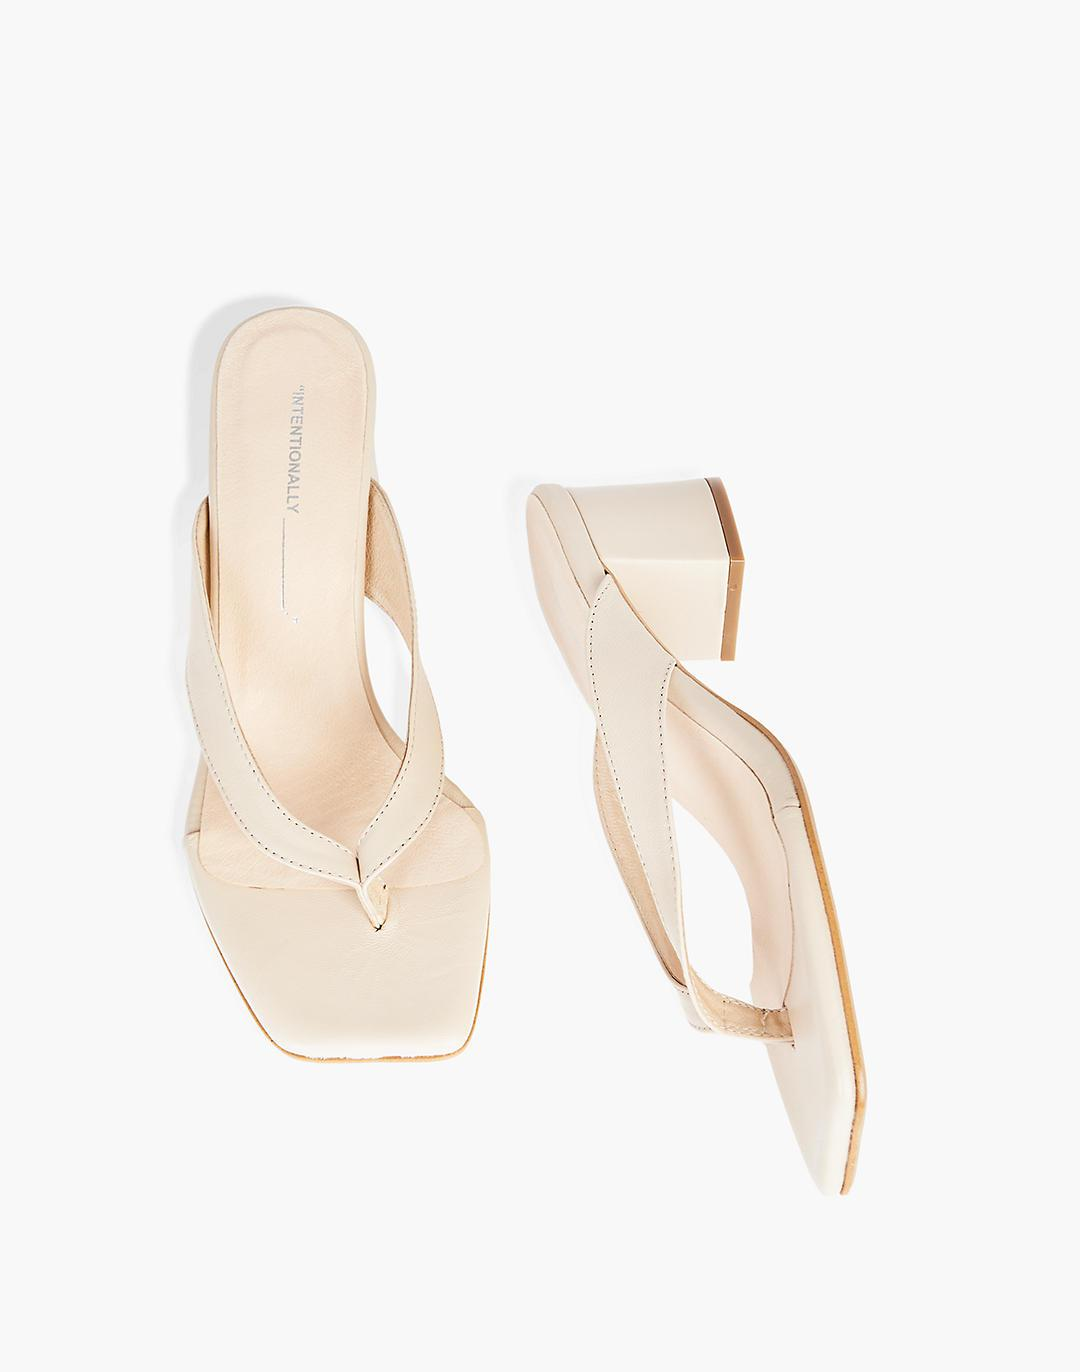 INTENTIONALLY BLANK Tea Clouds Sandals